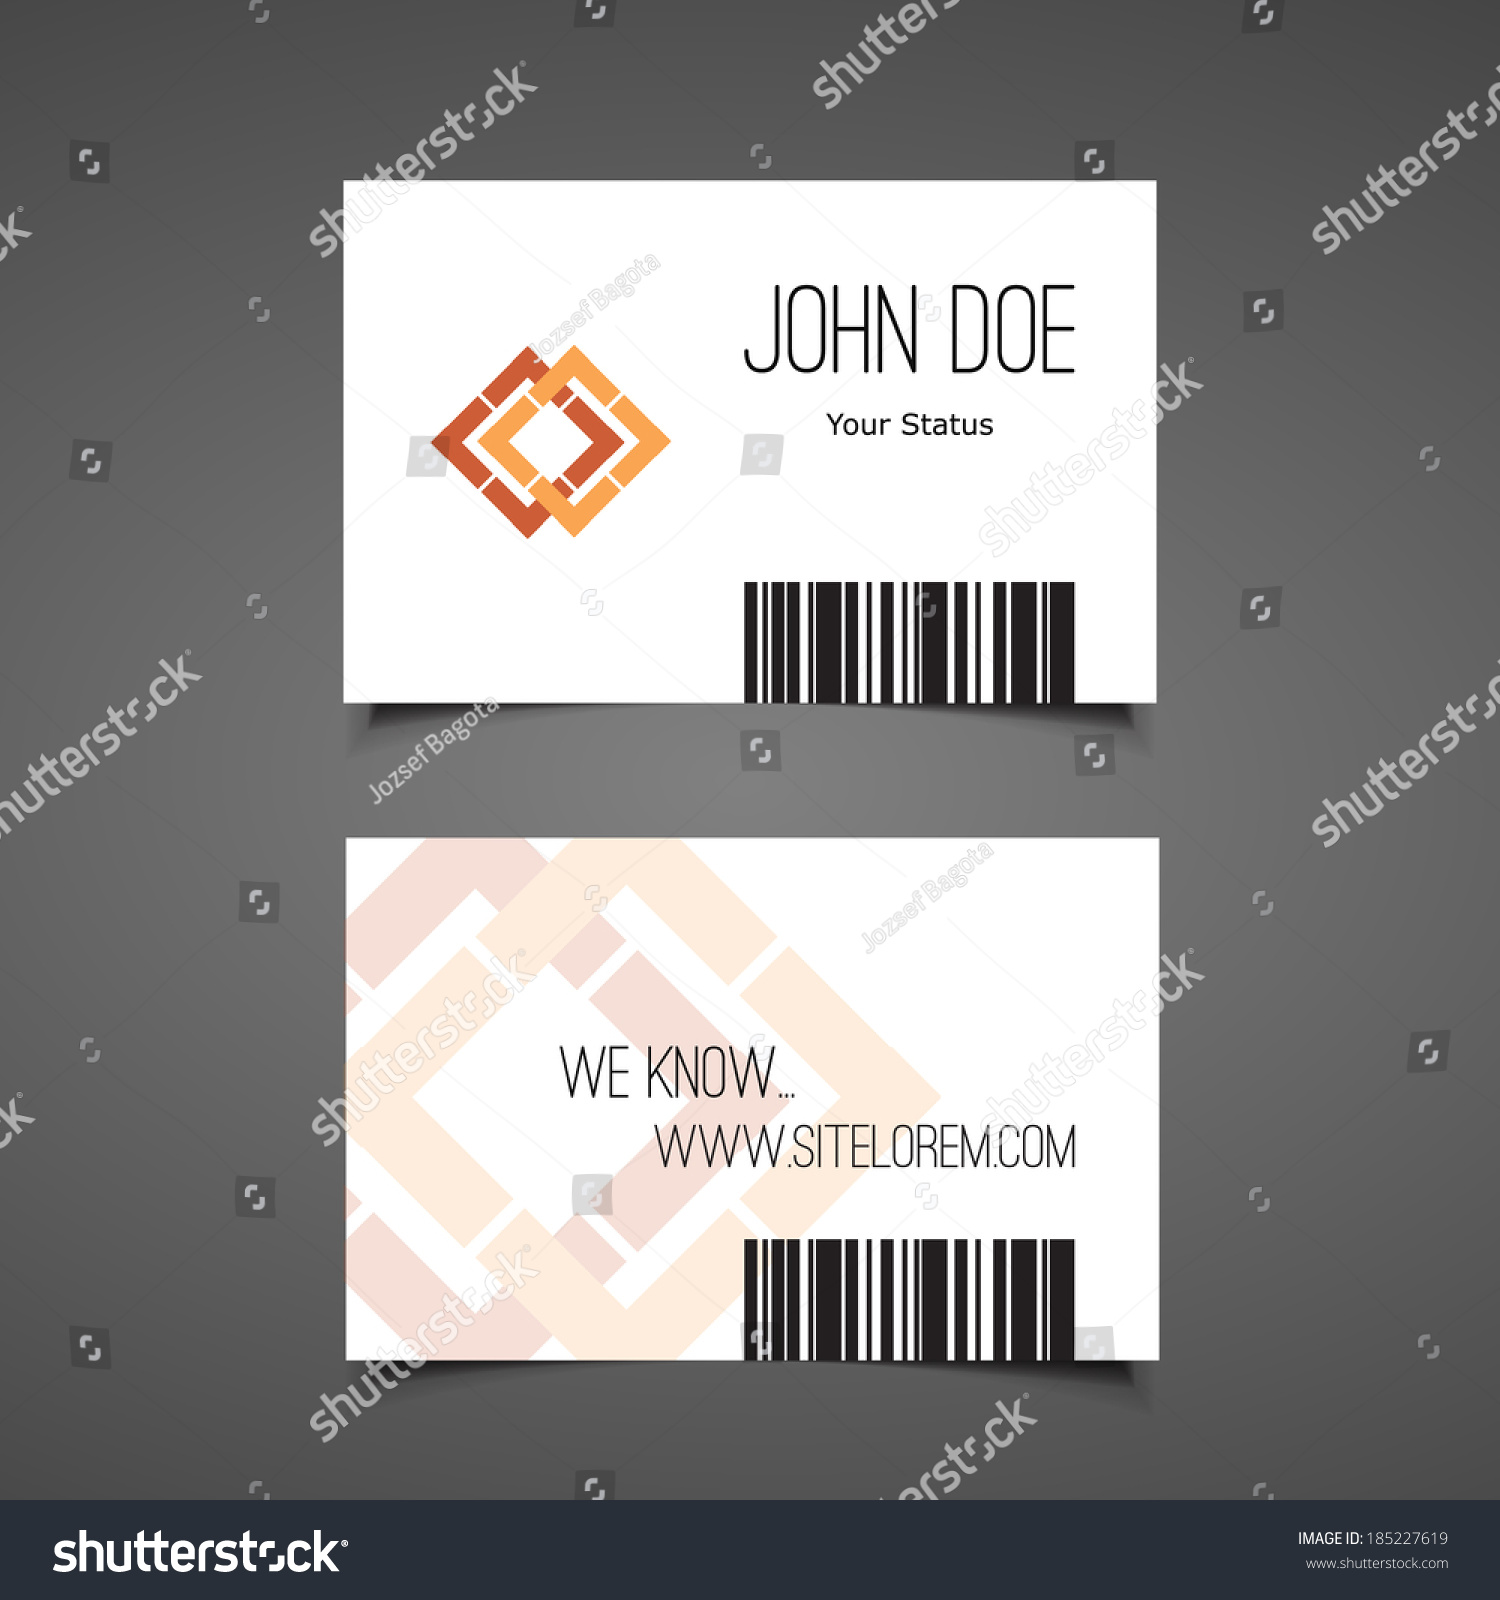 business t card design barcode background stock vector